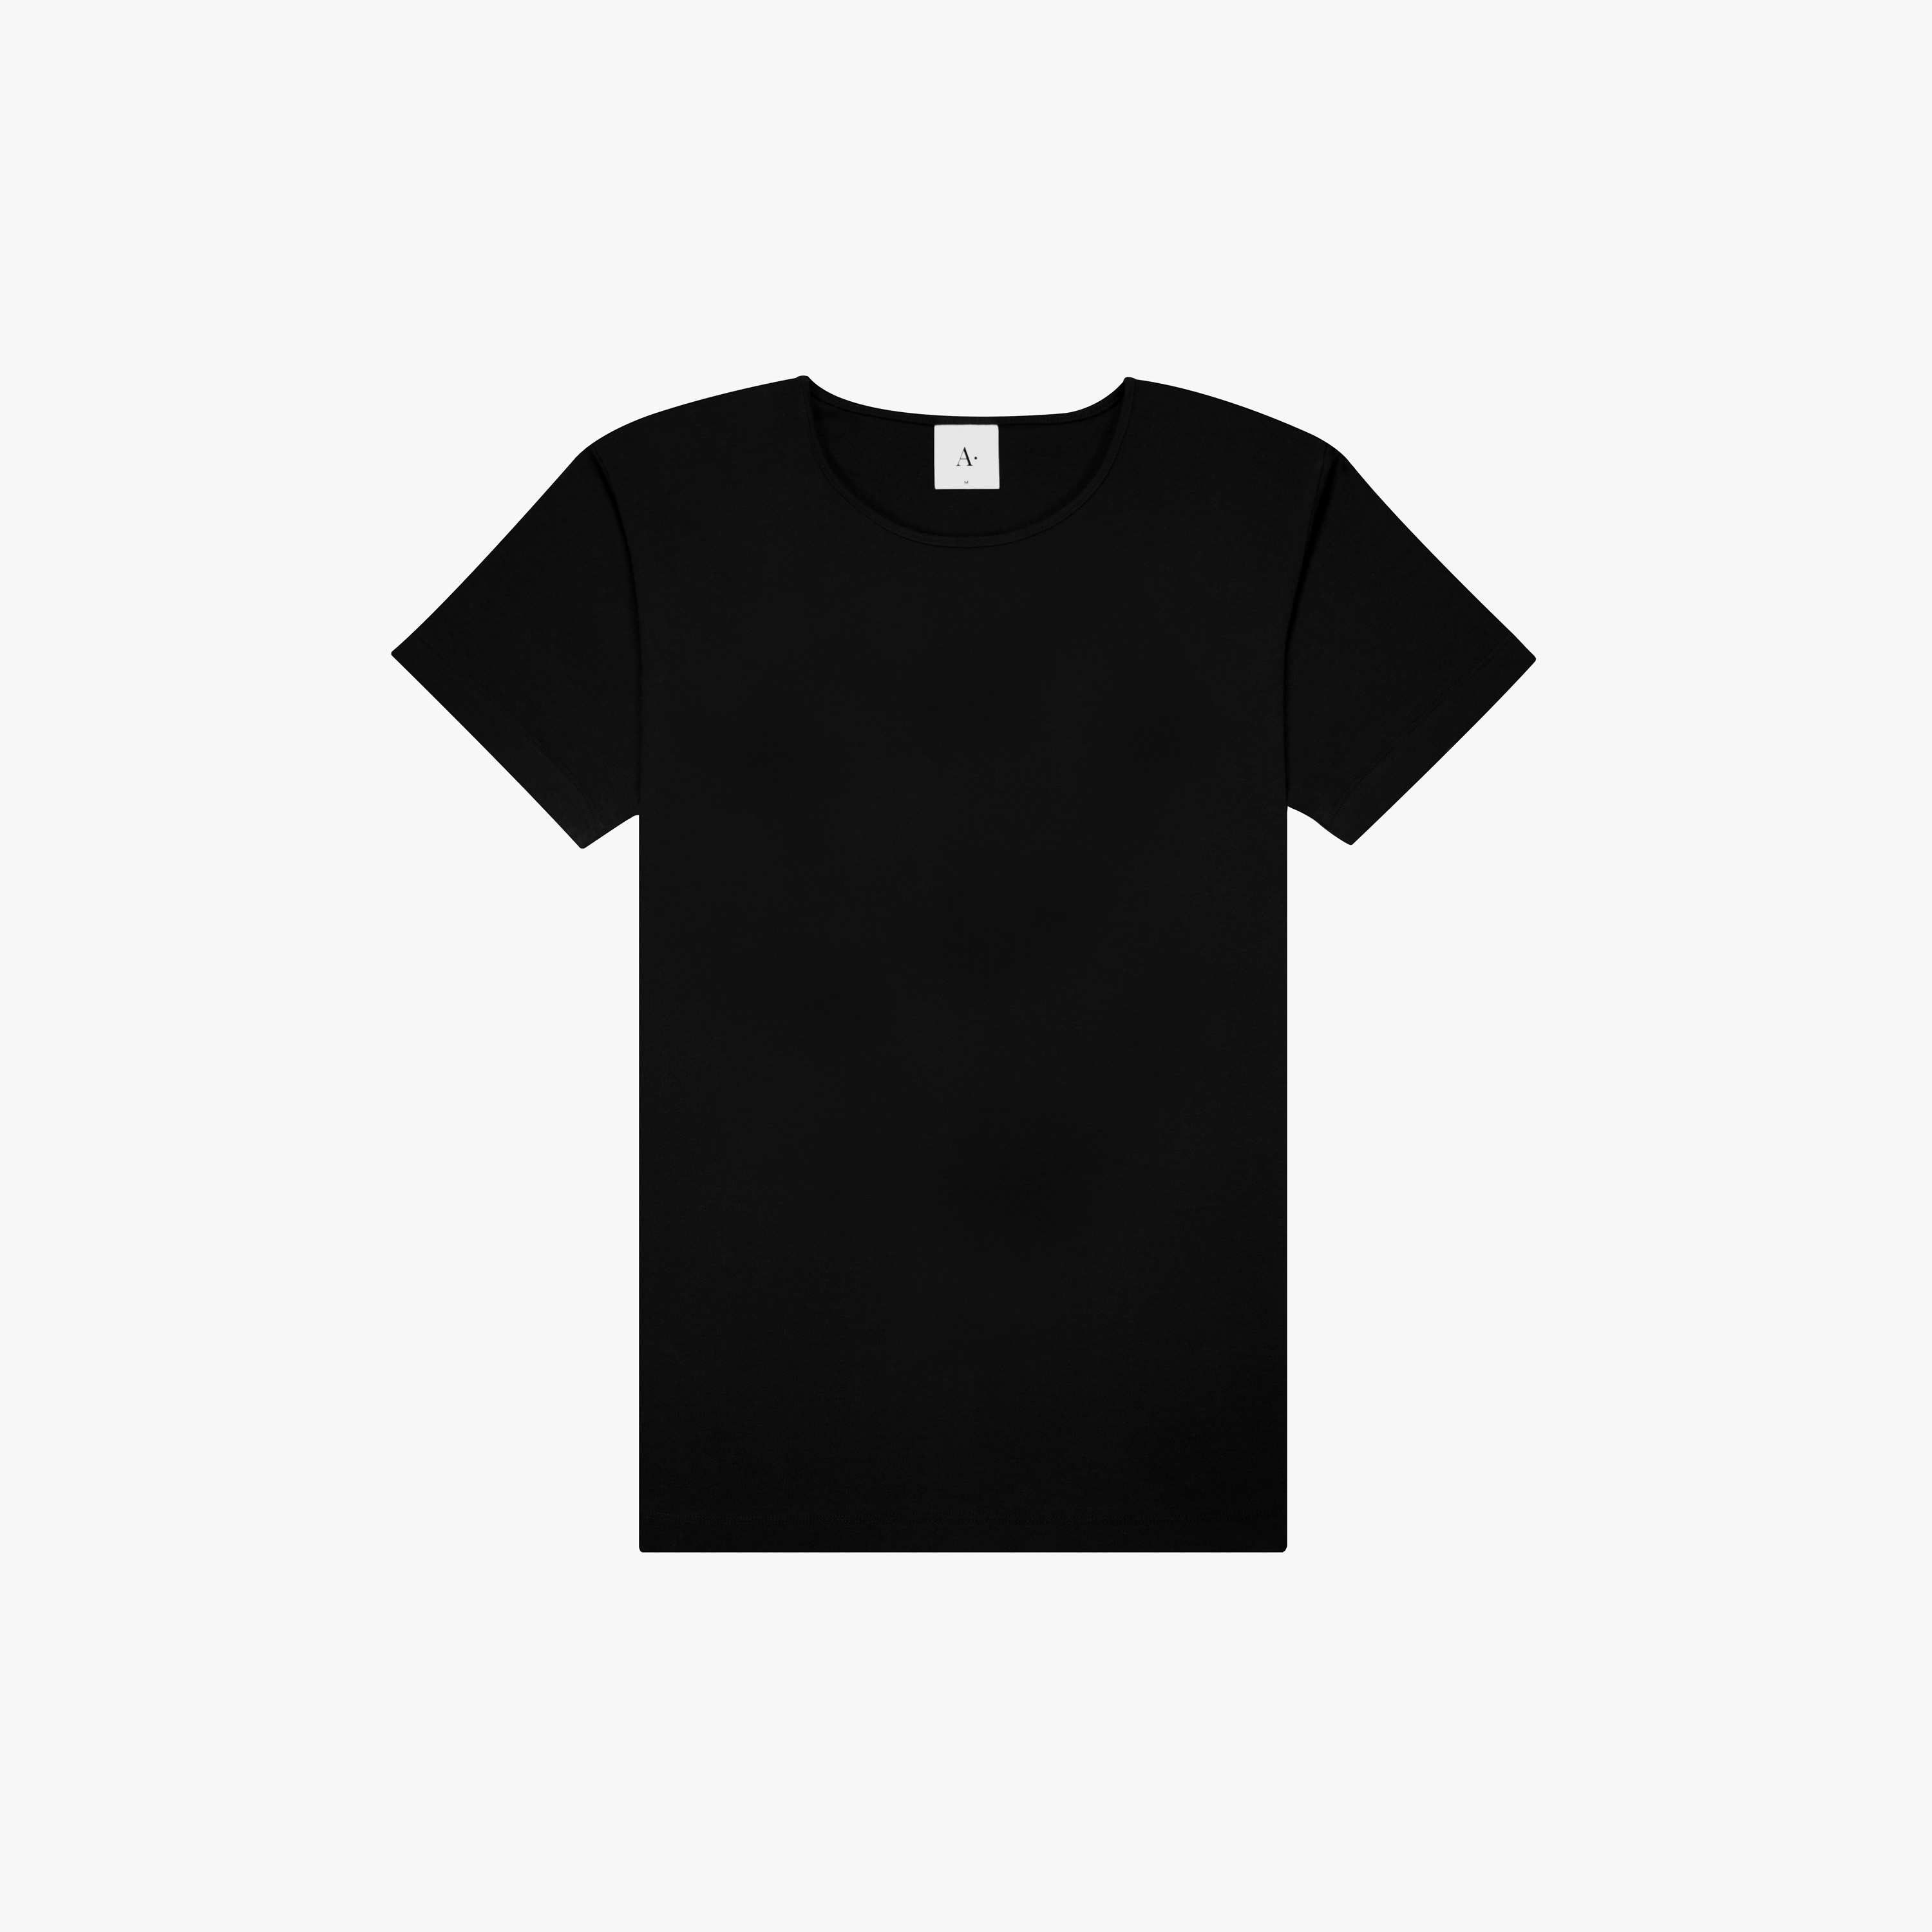 black, faded, cream, pure, tee, organic, natural, cotton, premium, quality, sustainablilty